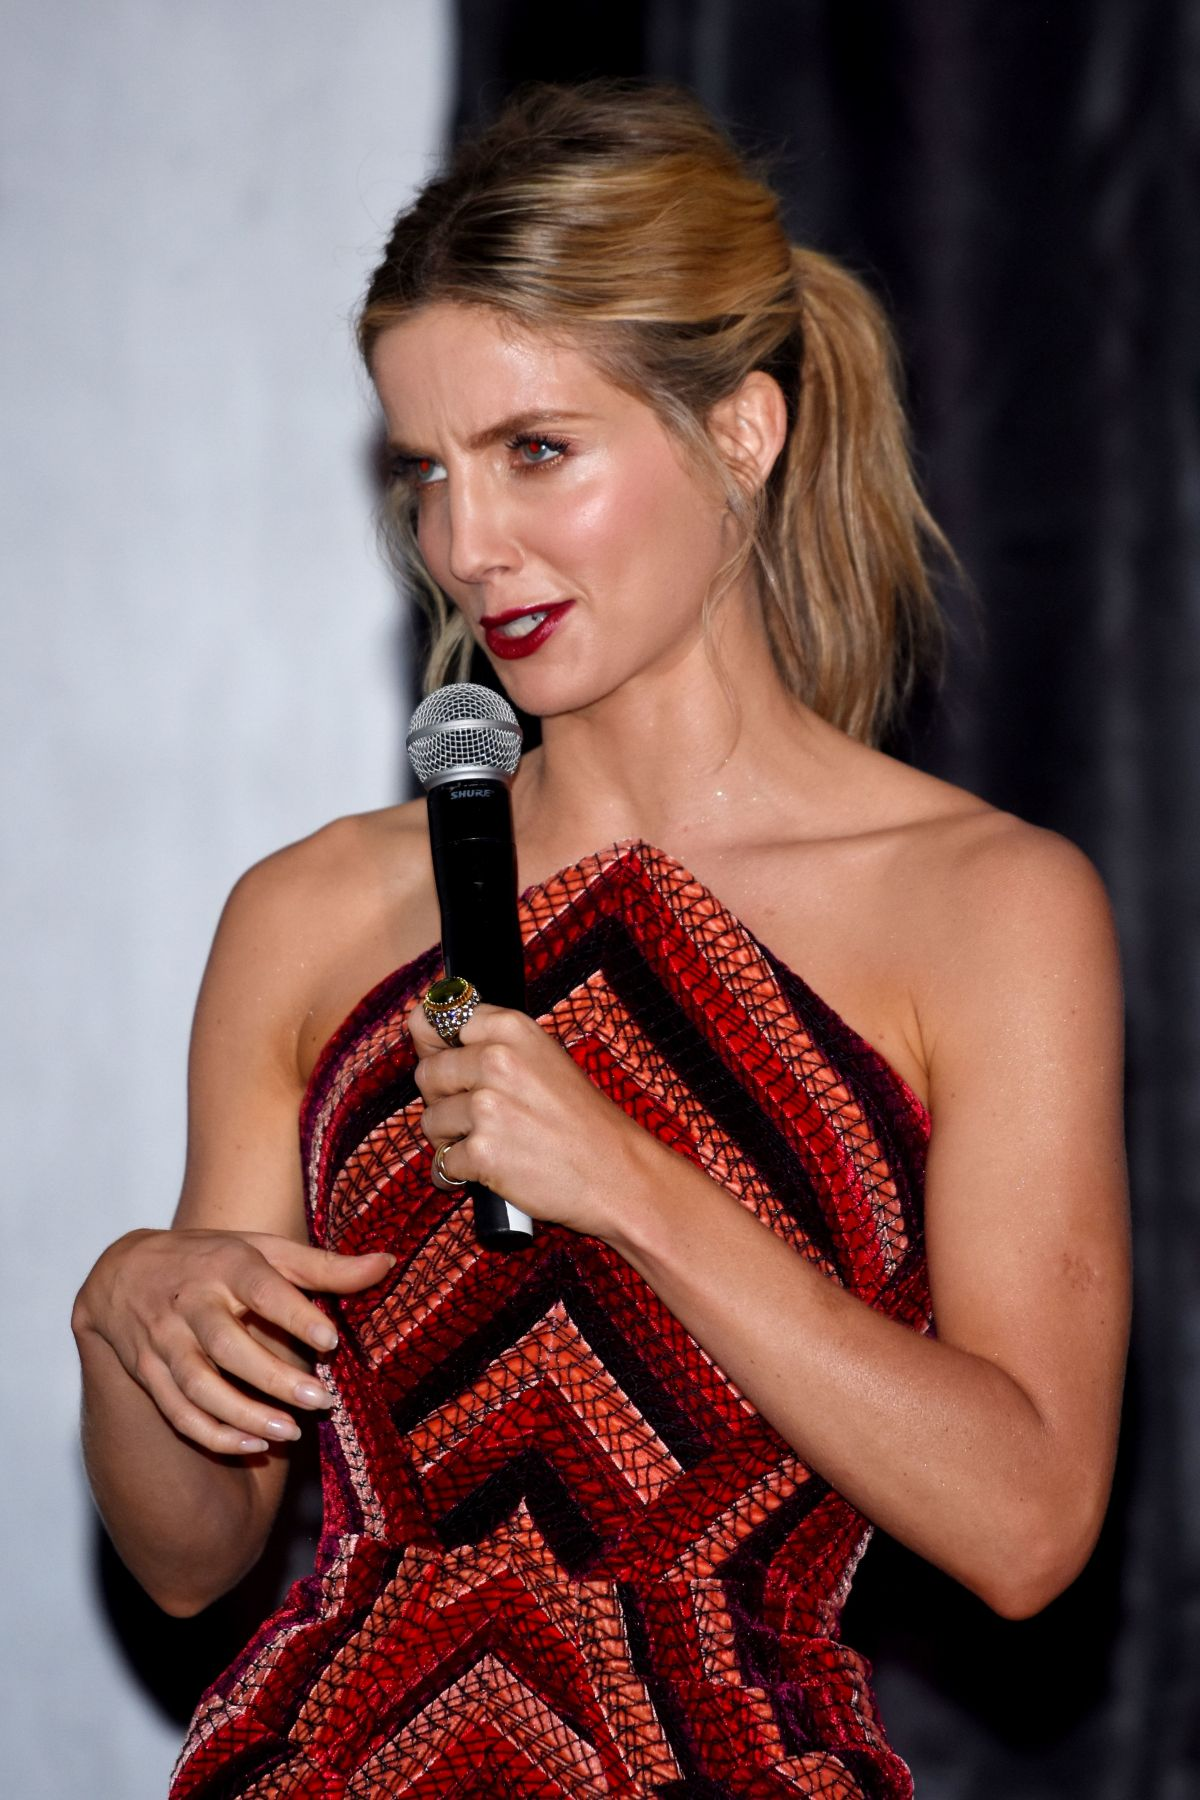 ANNABELLE WALLIS at The Mummy Premiere in Mexico City 06/05/2017